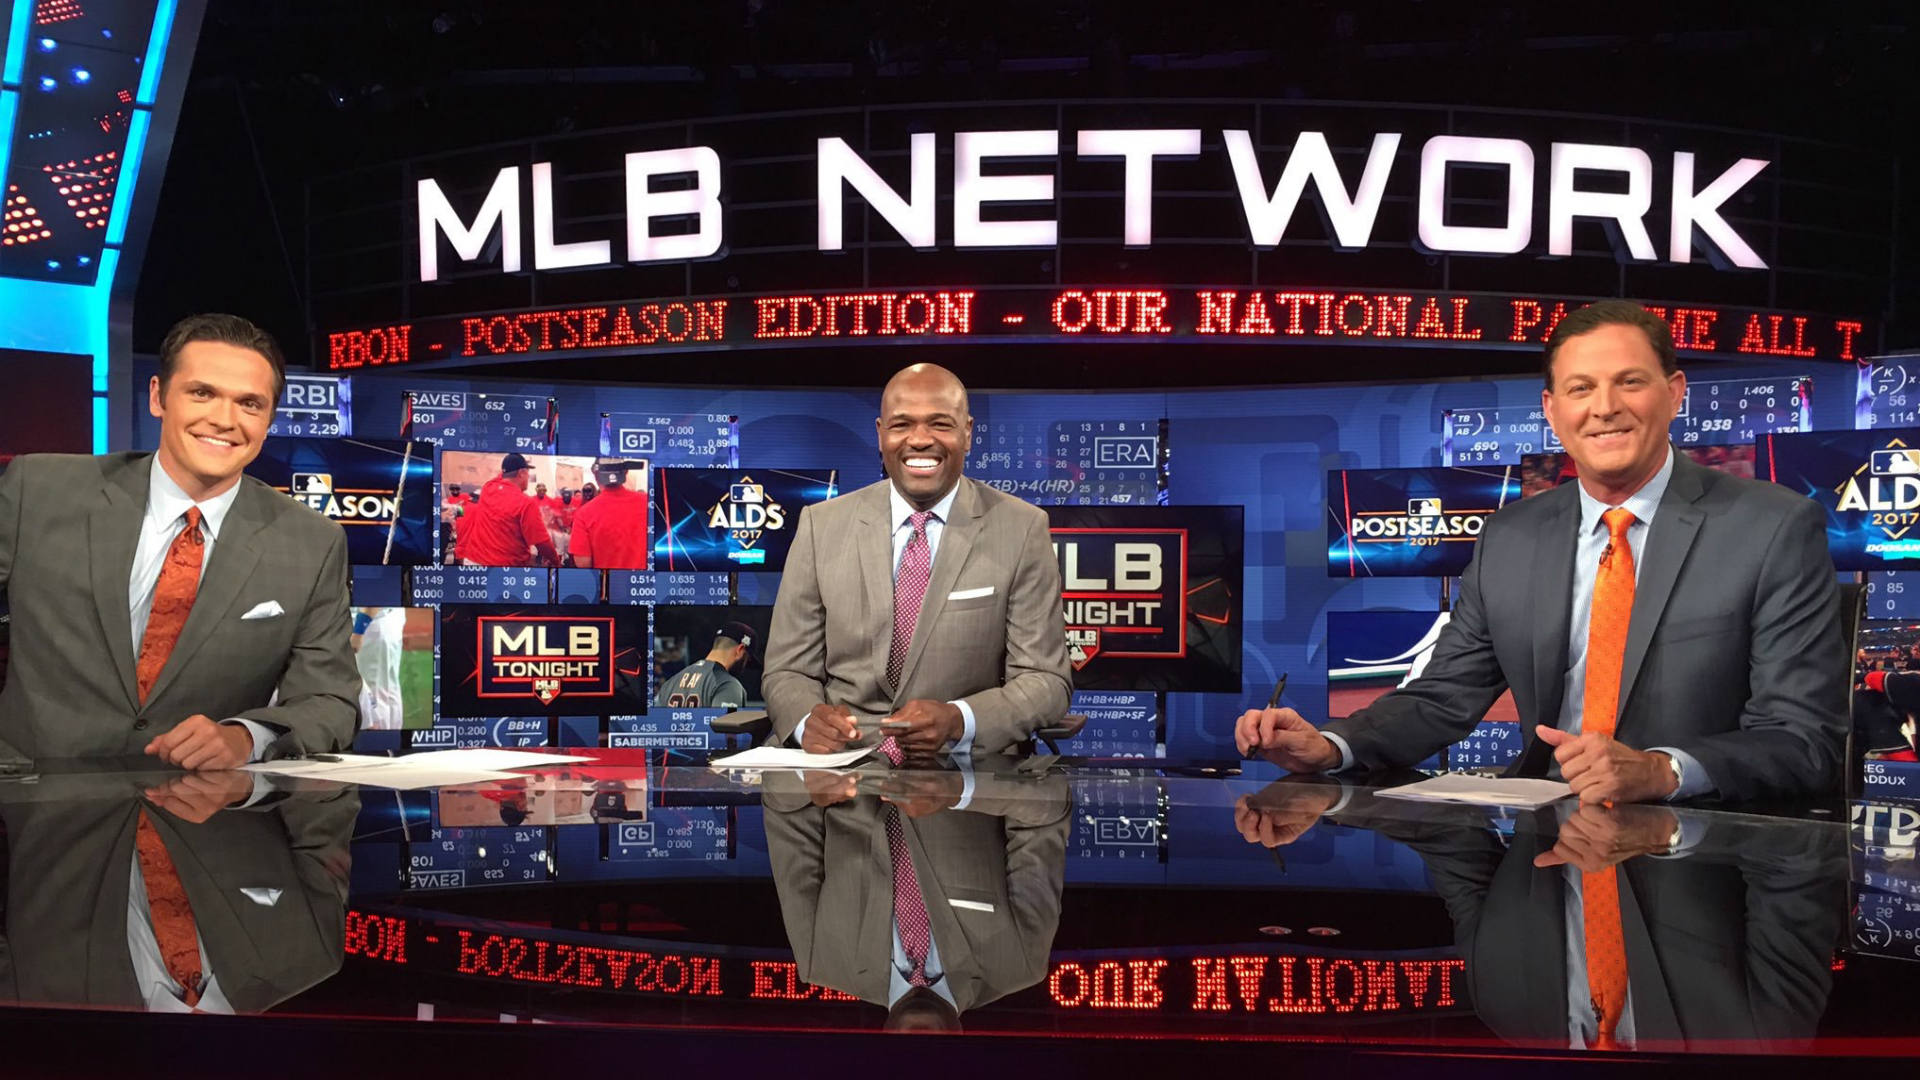 Planning for nothing: A look at how MLB Network covers, questions